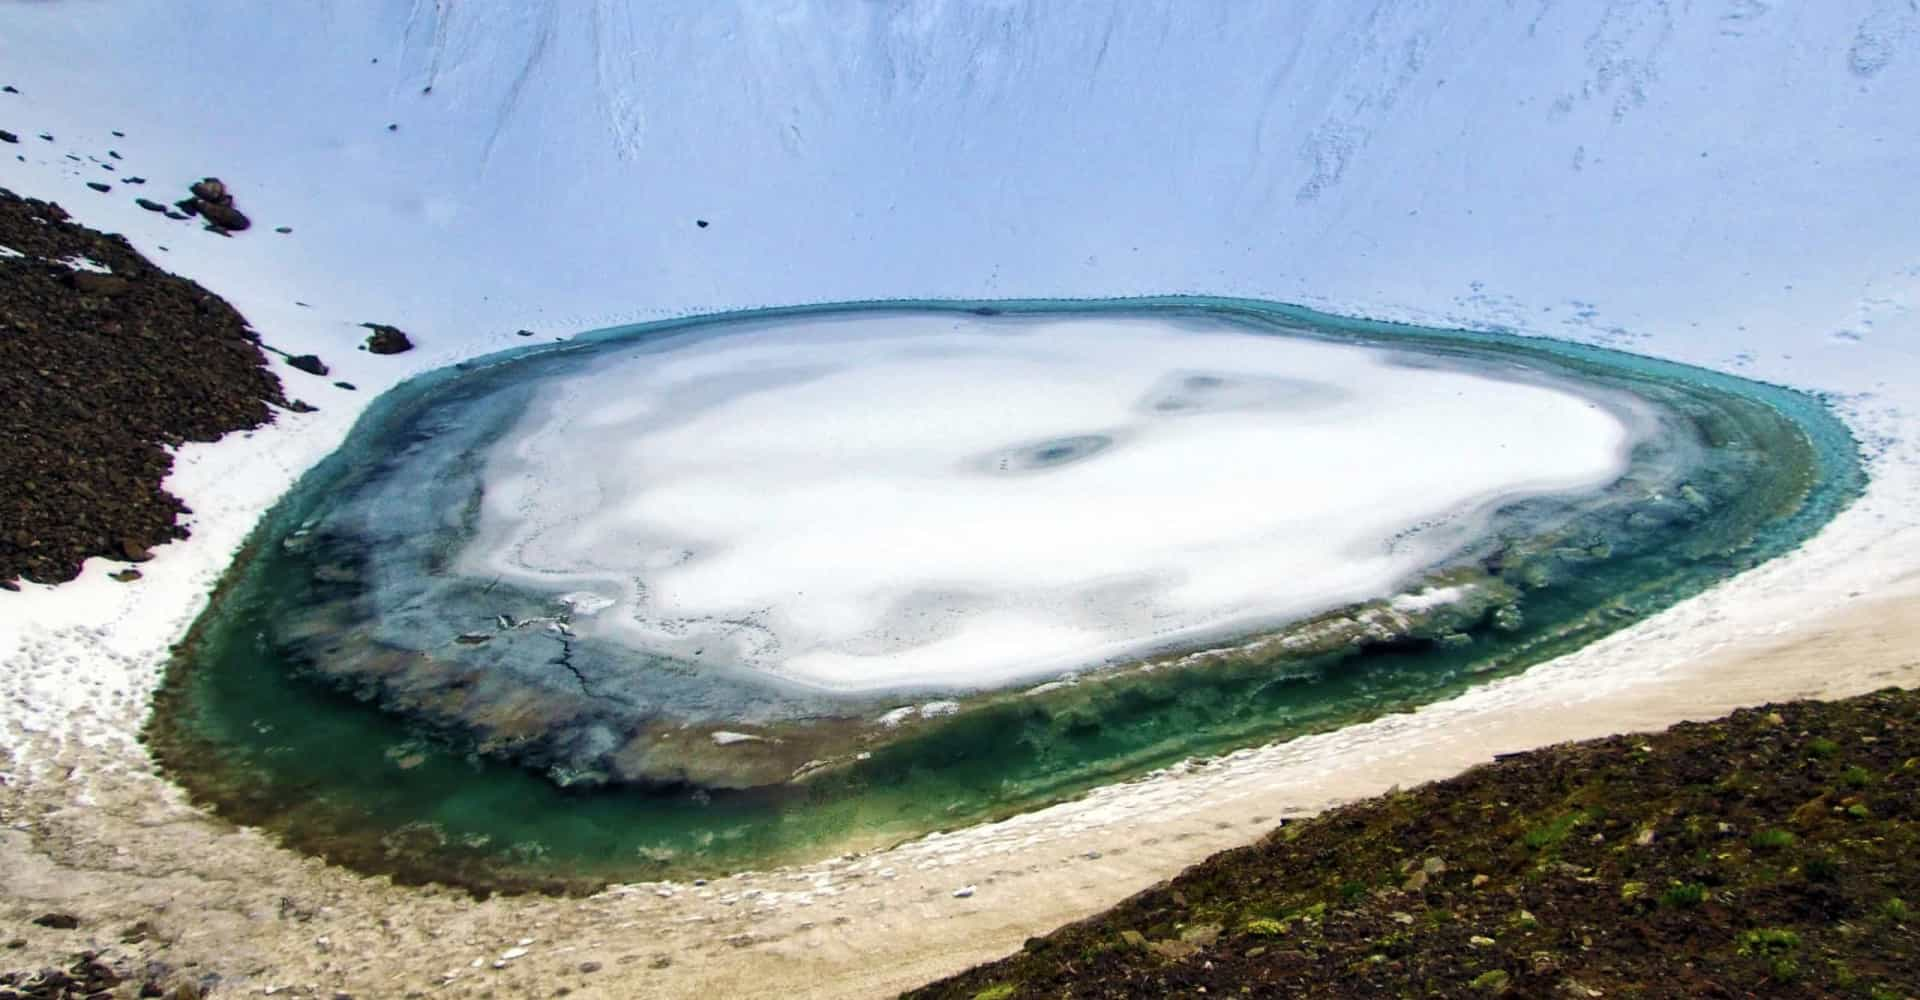 This glacial lake hides a dark secret